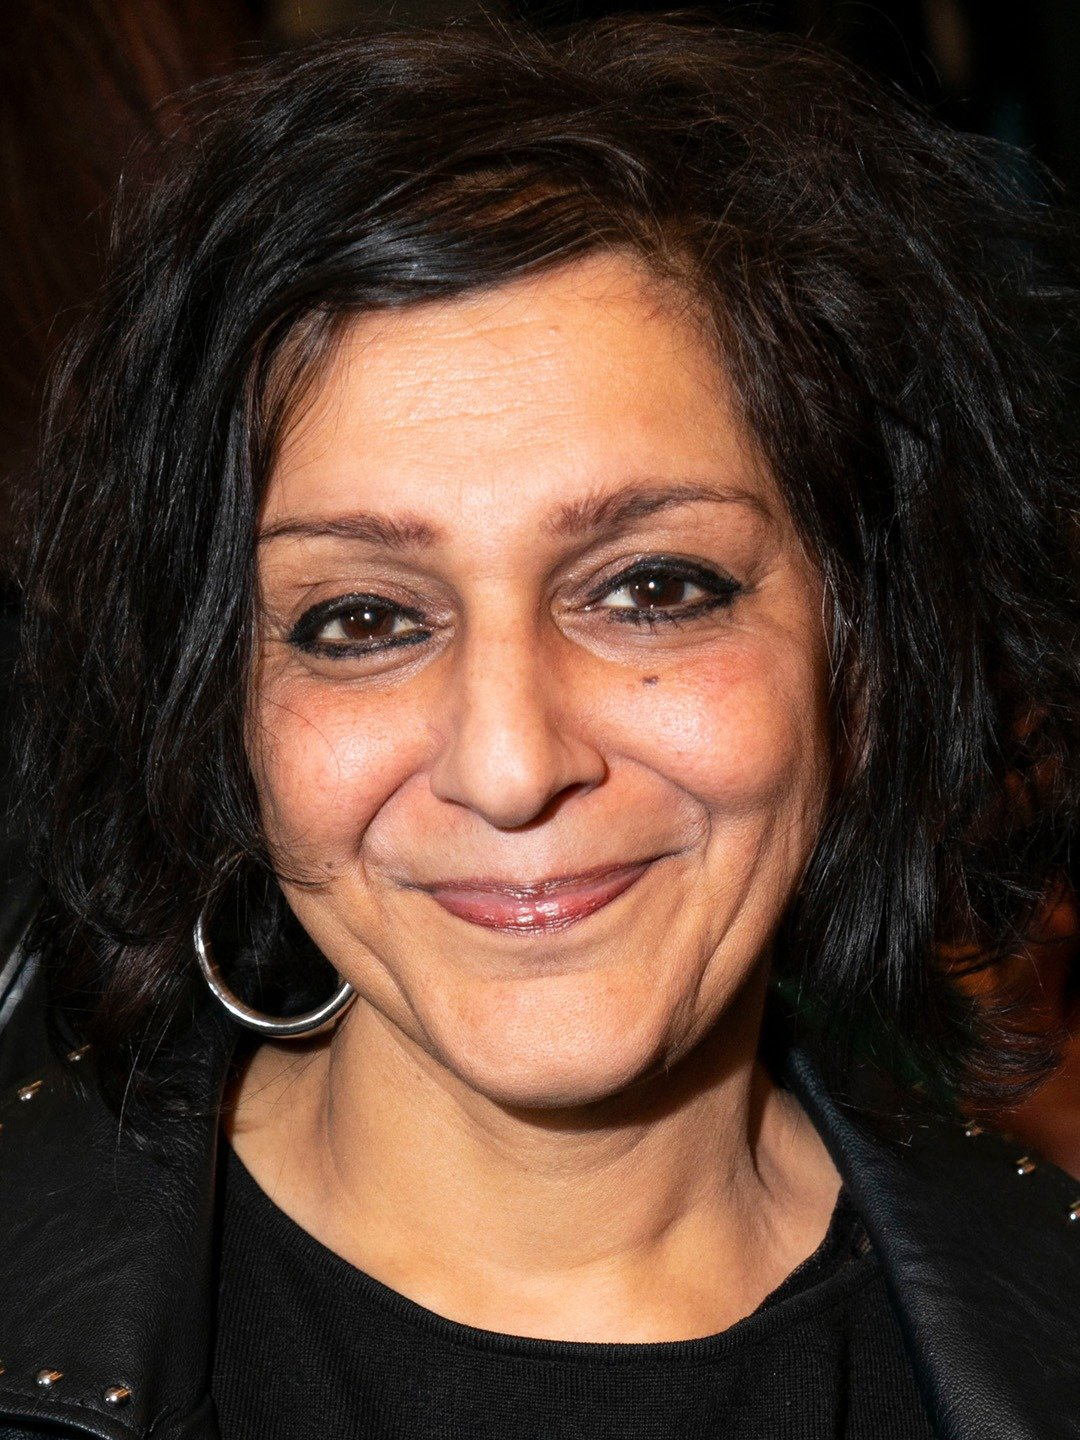 Meera Syal British Comedian, Writer, Singer, Journalist, Producer, Actress